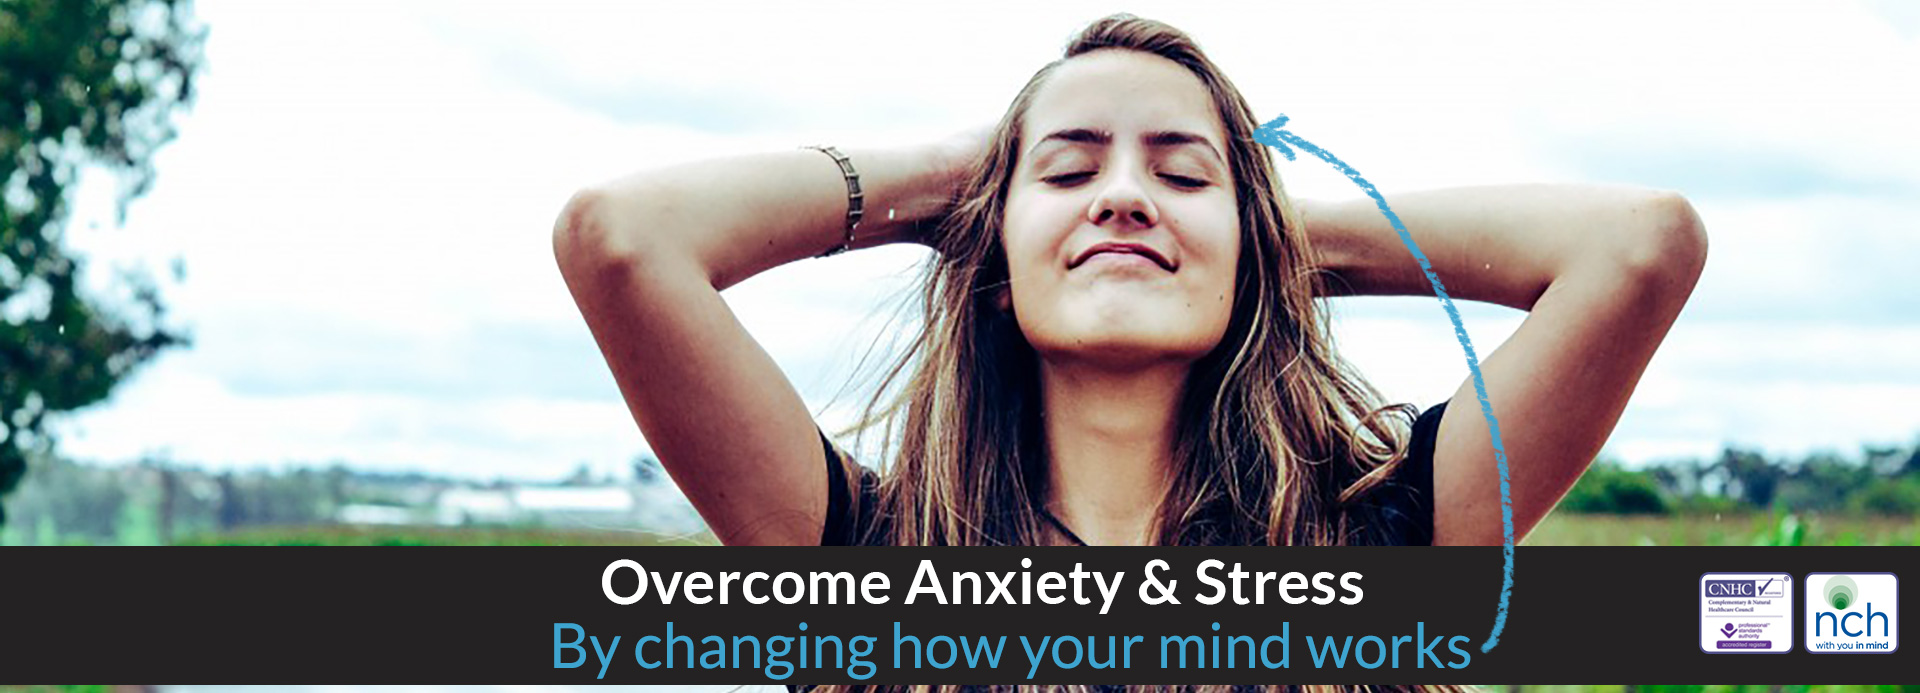 Overcome Anxiety & Stress - By changing how your mind works